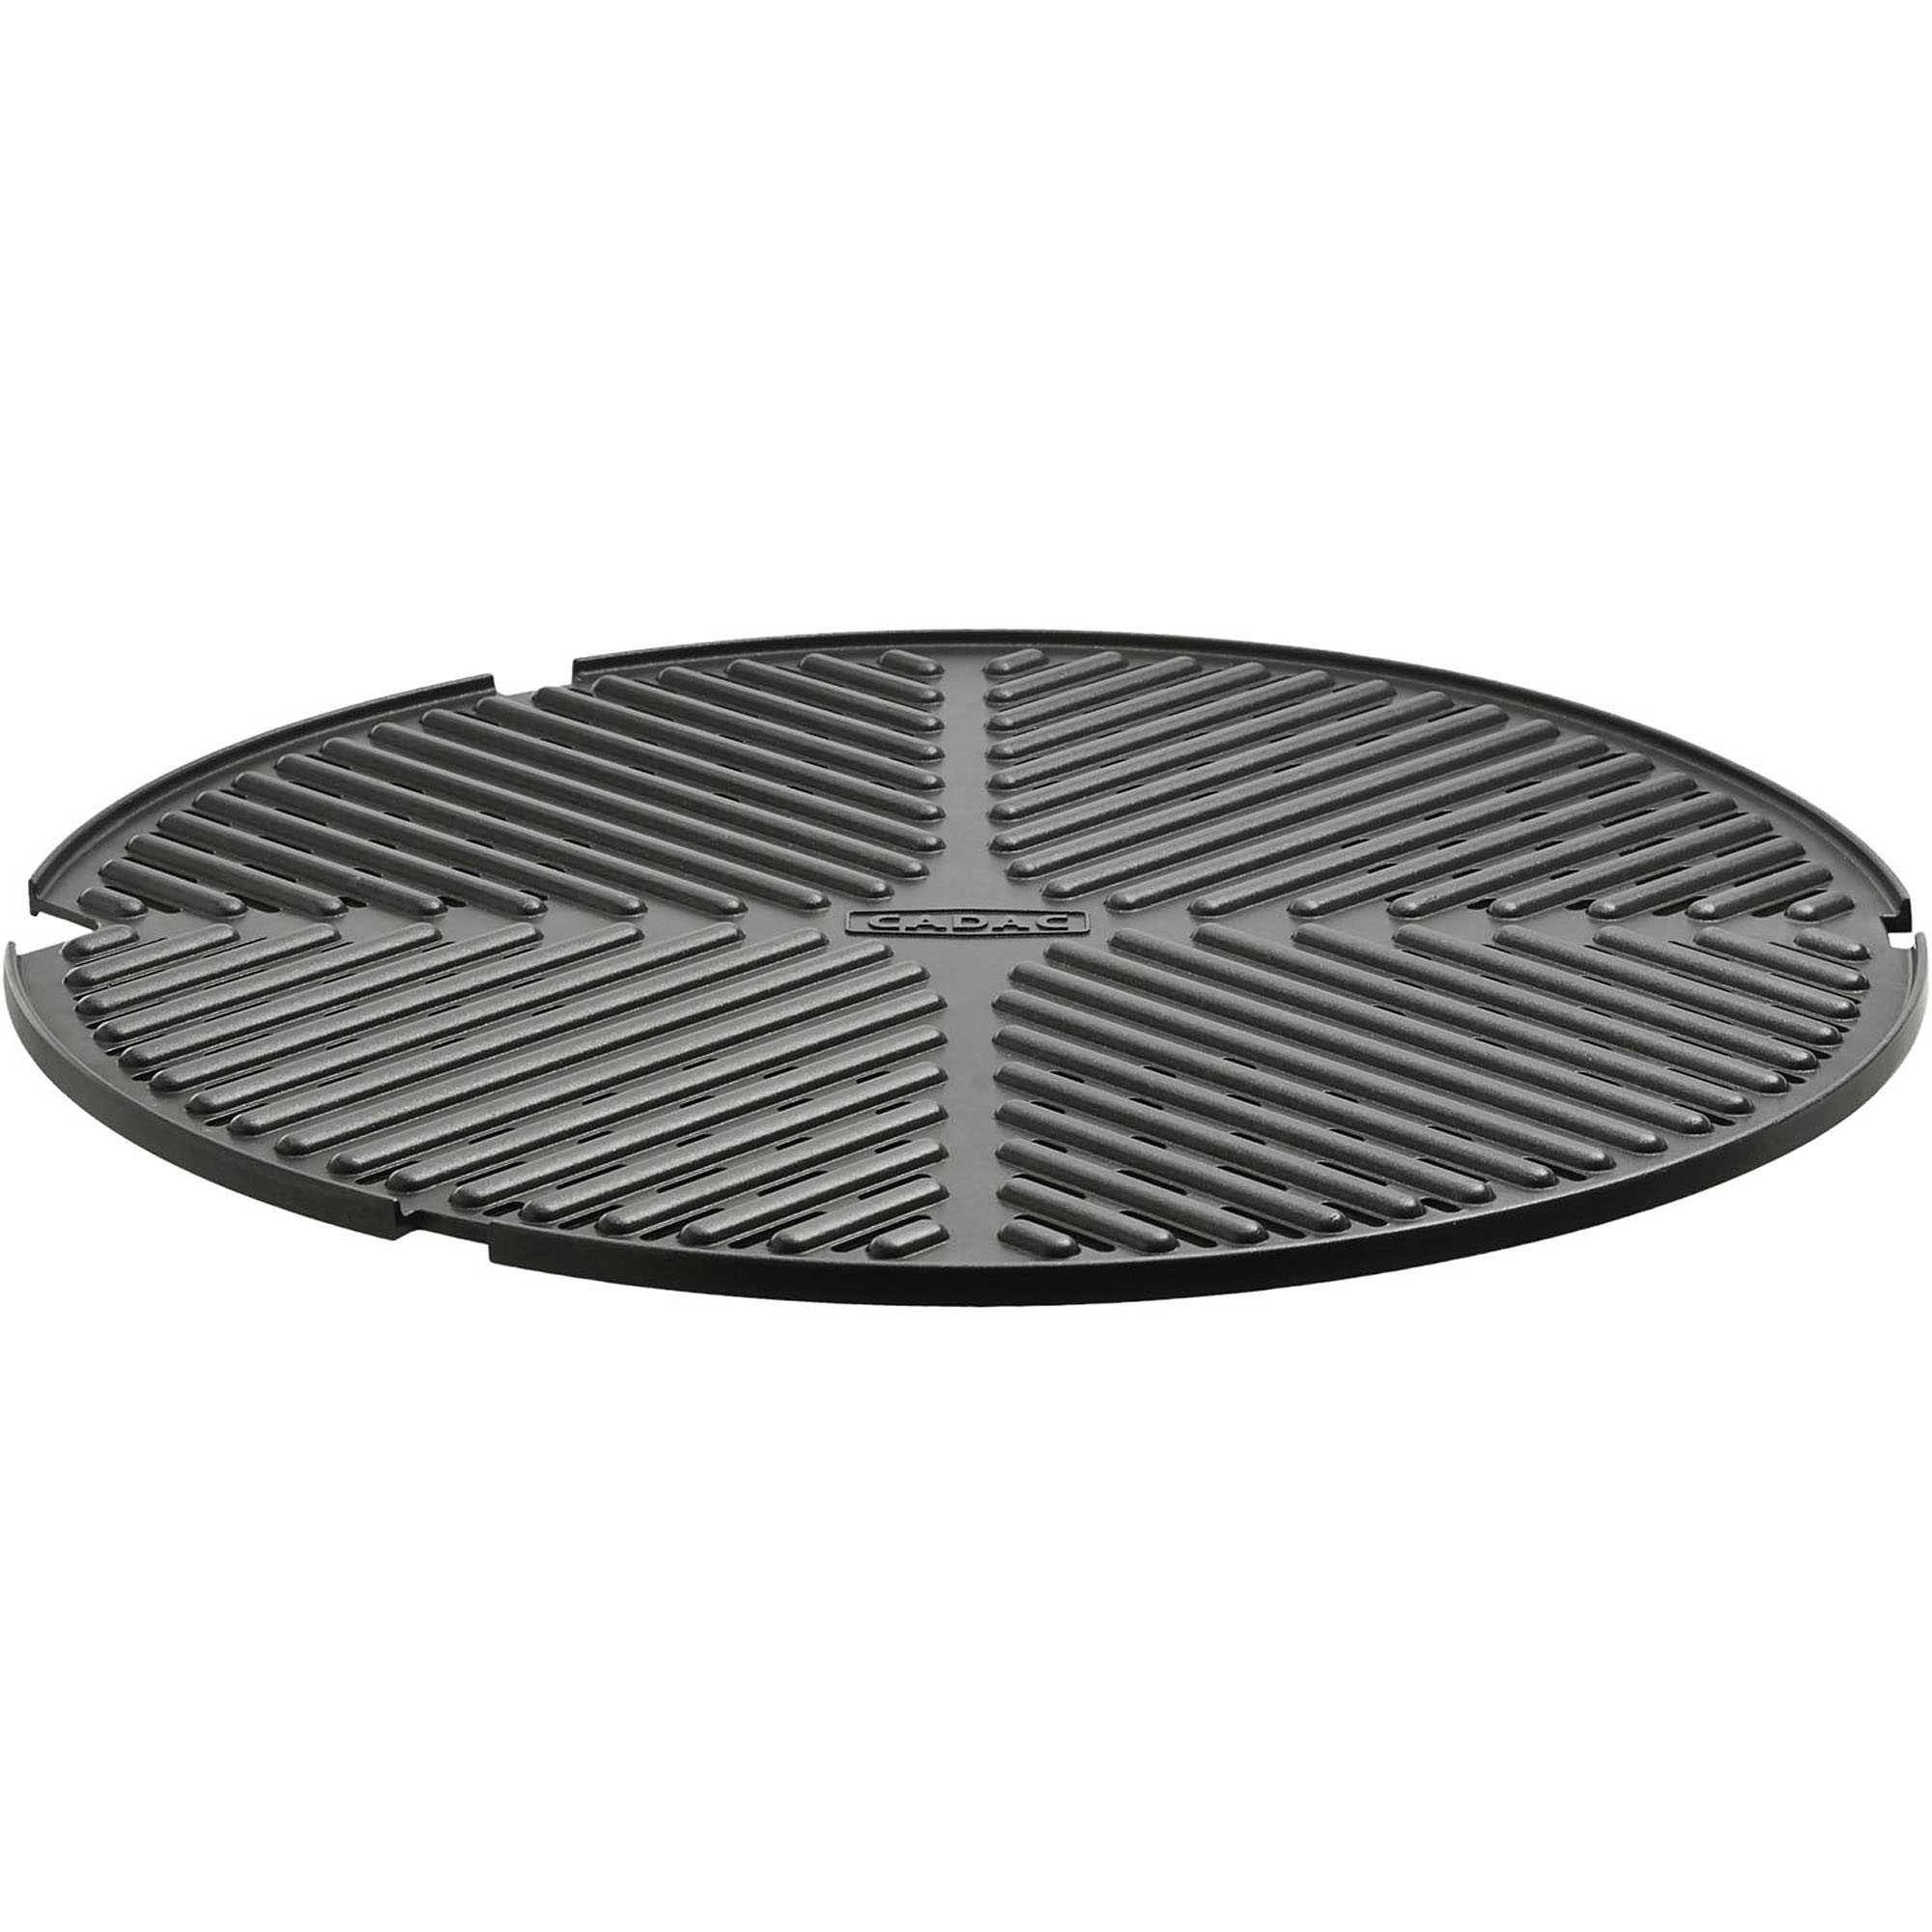 "Cadac 18"" BBQ Grid for Carri Chef 2 Outdoor Gas Grill"